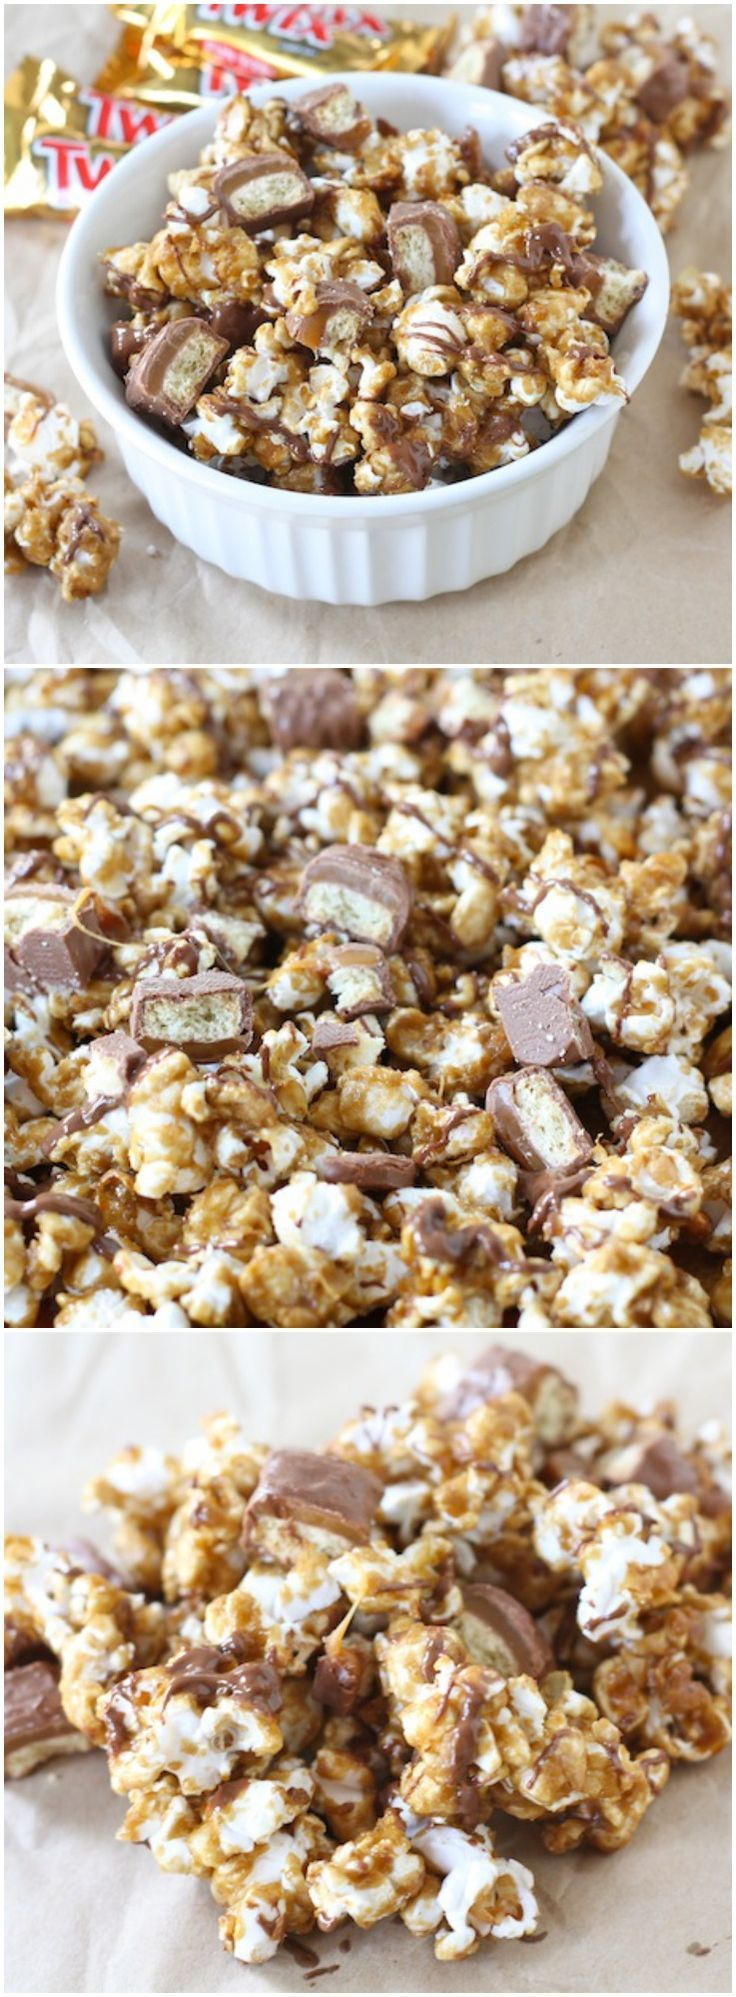 Twix Caramel Popcorn Recipe on twopeasandtheirpod.com. This sweet popcorn is perfect for snacking!